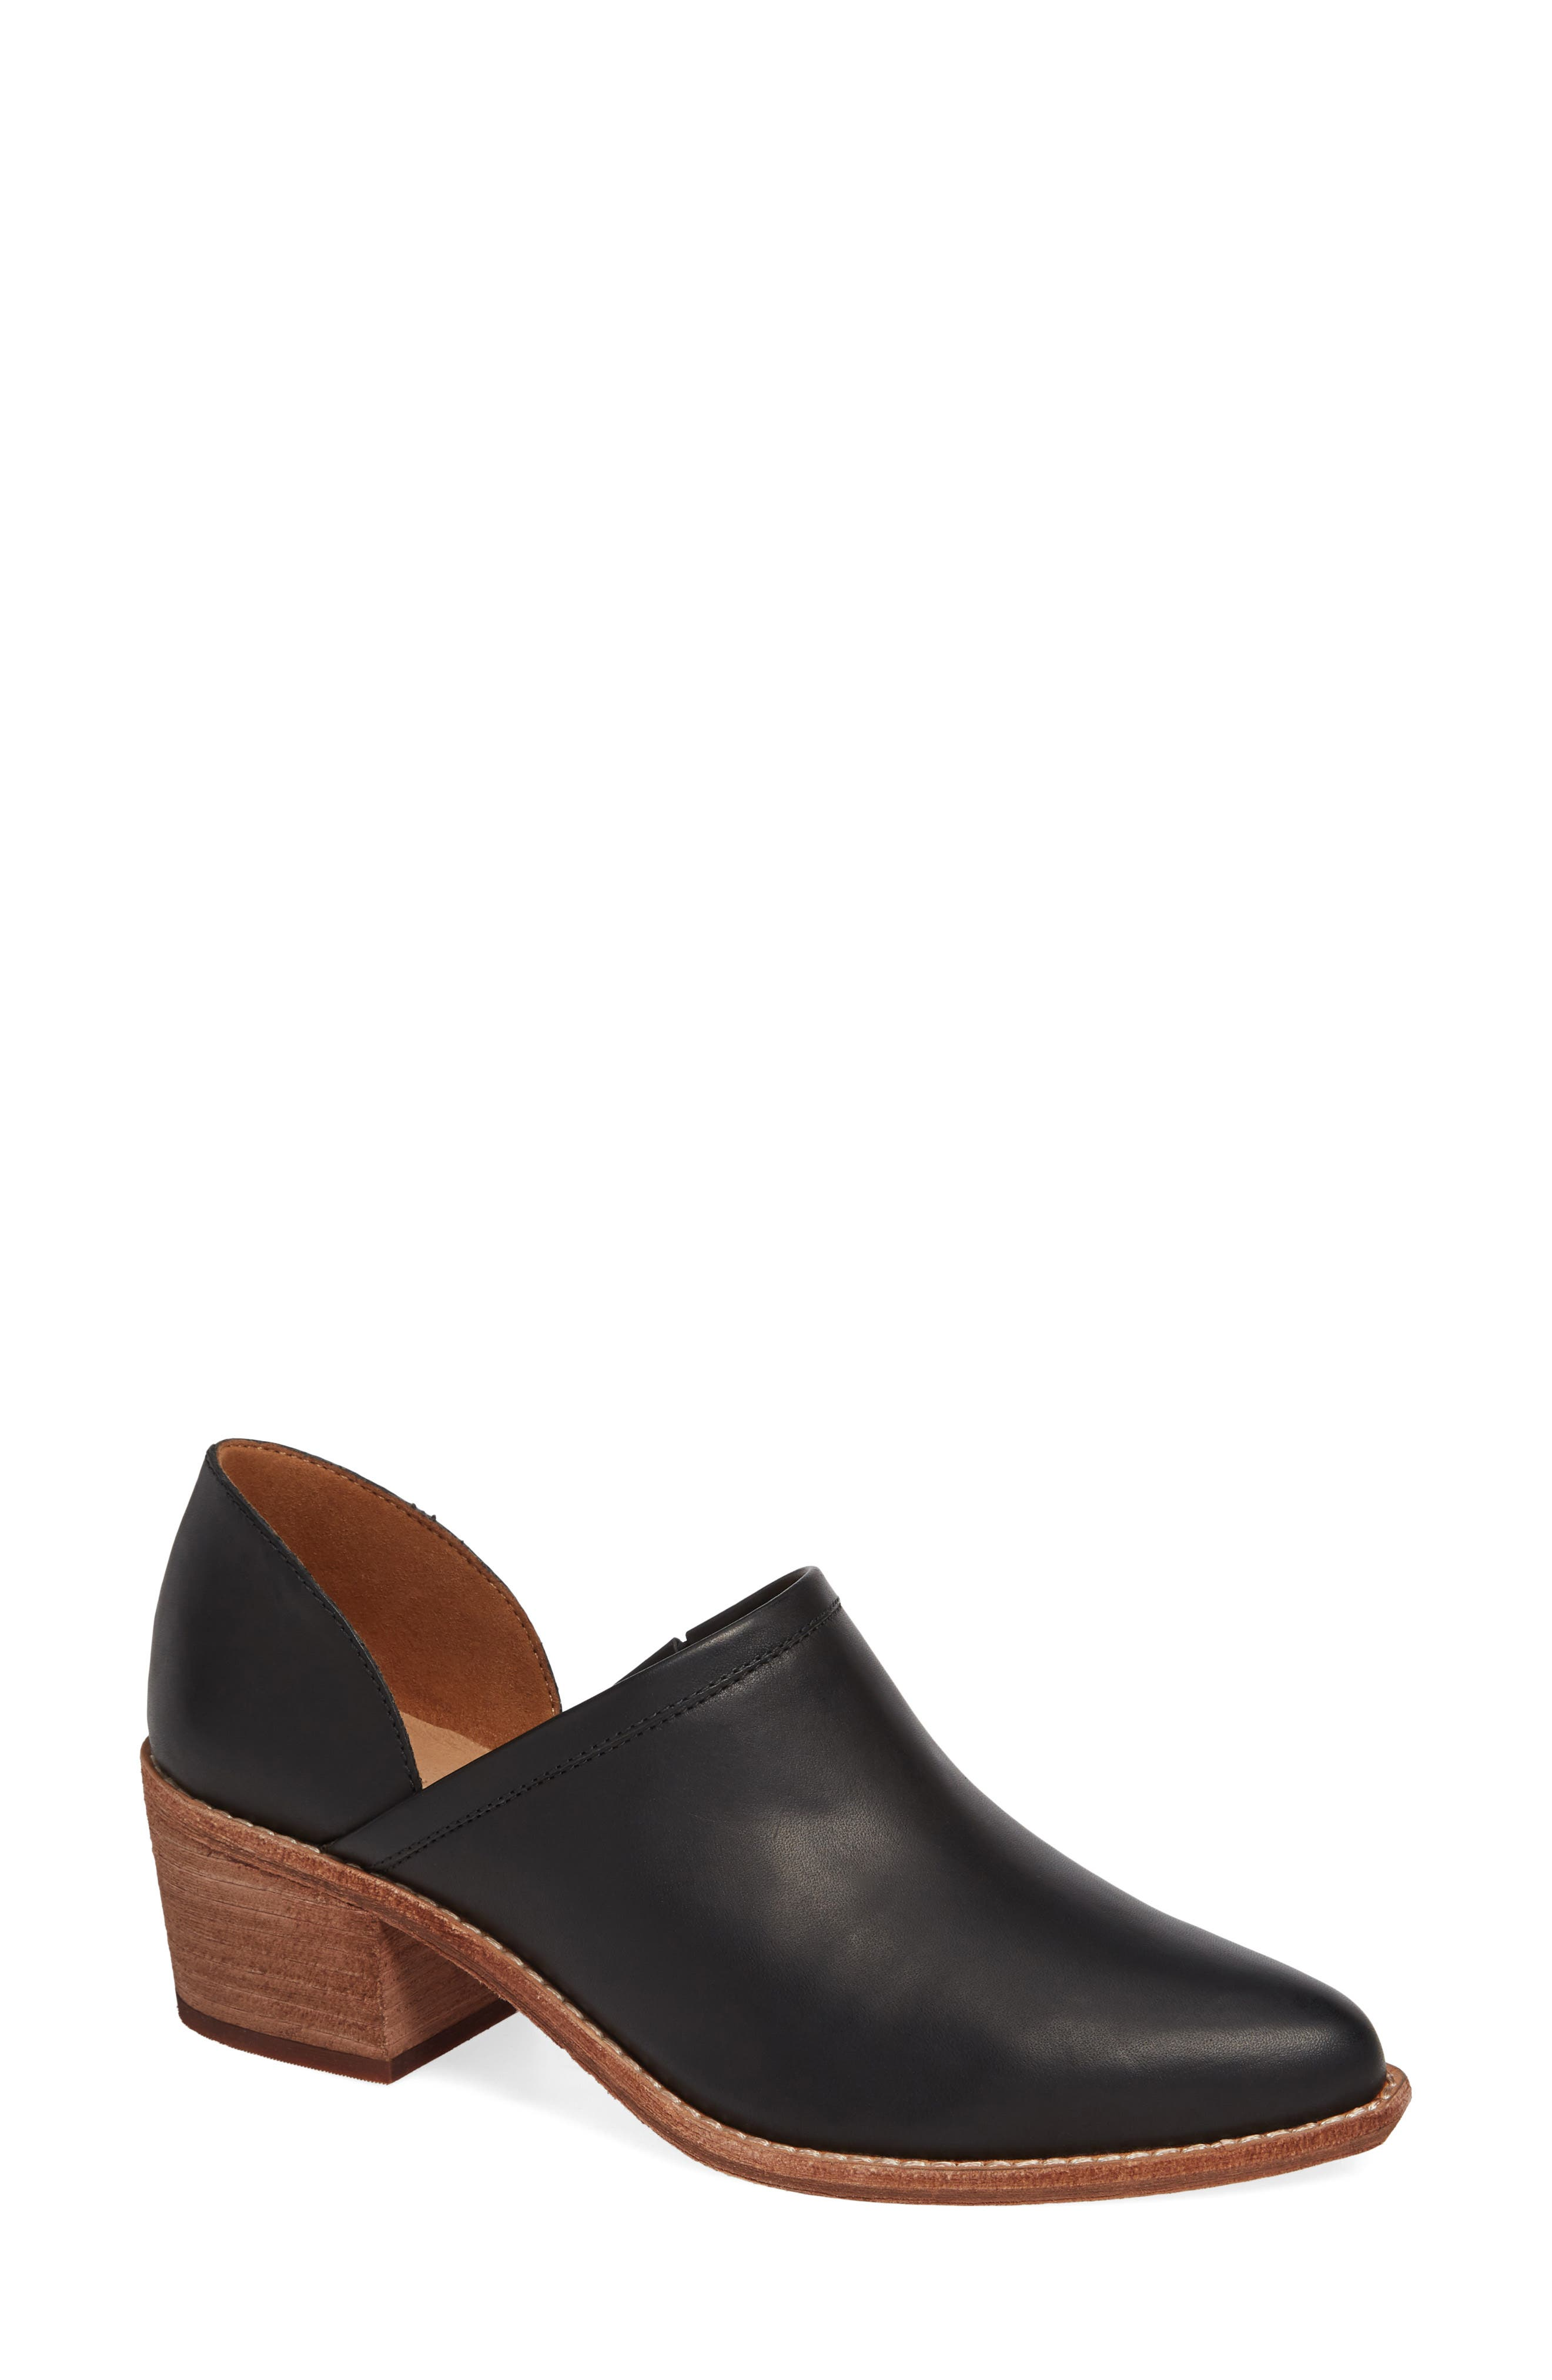 MADEWELL, The Brady Block Heel Bootie, Main thumbnail 1, color, TRUE BLACK LEATHER